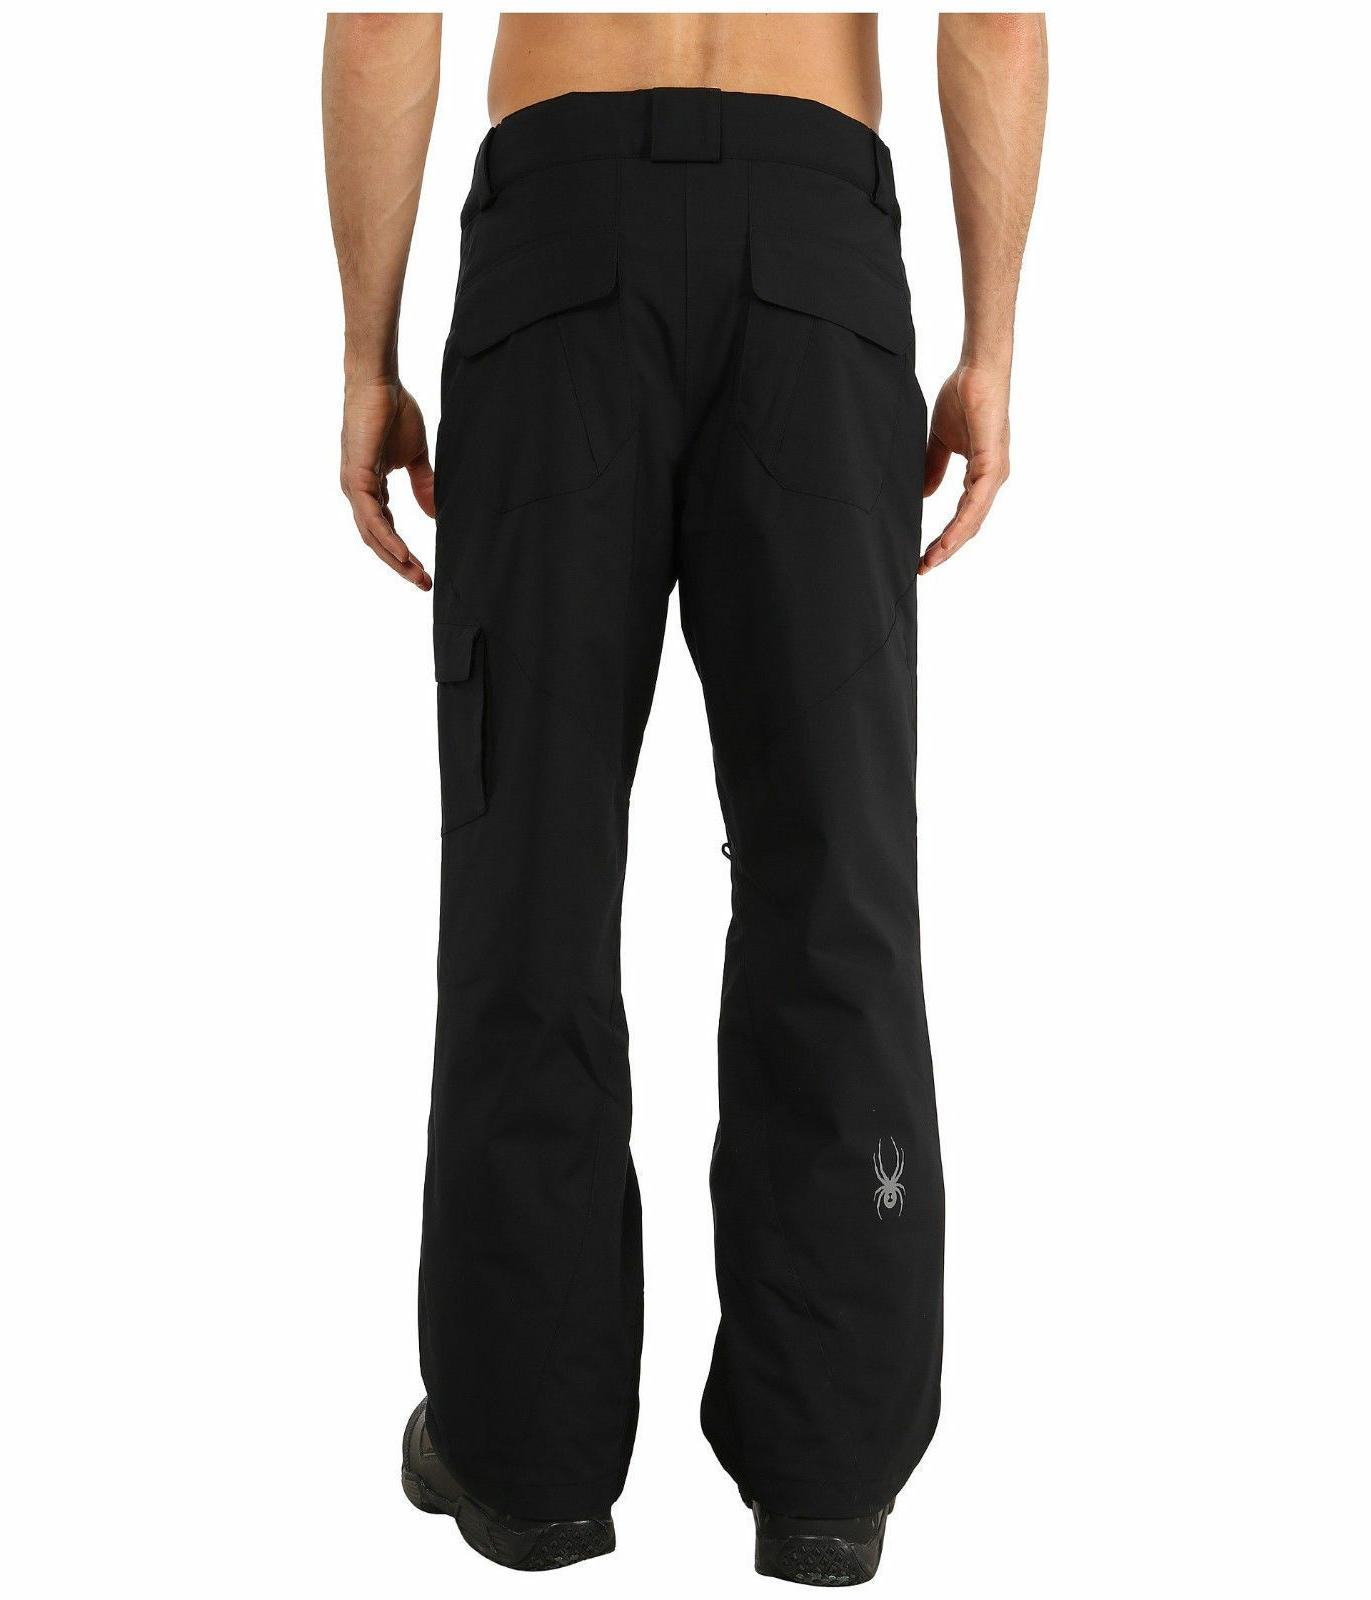 NEW Men's Spyder Boss Ski Pants VARIETY B32 B33